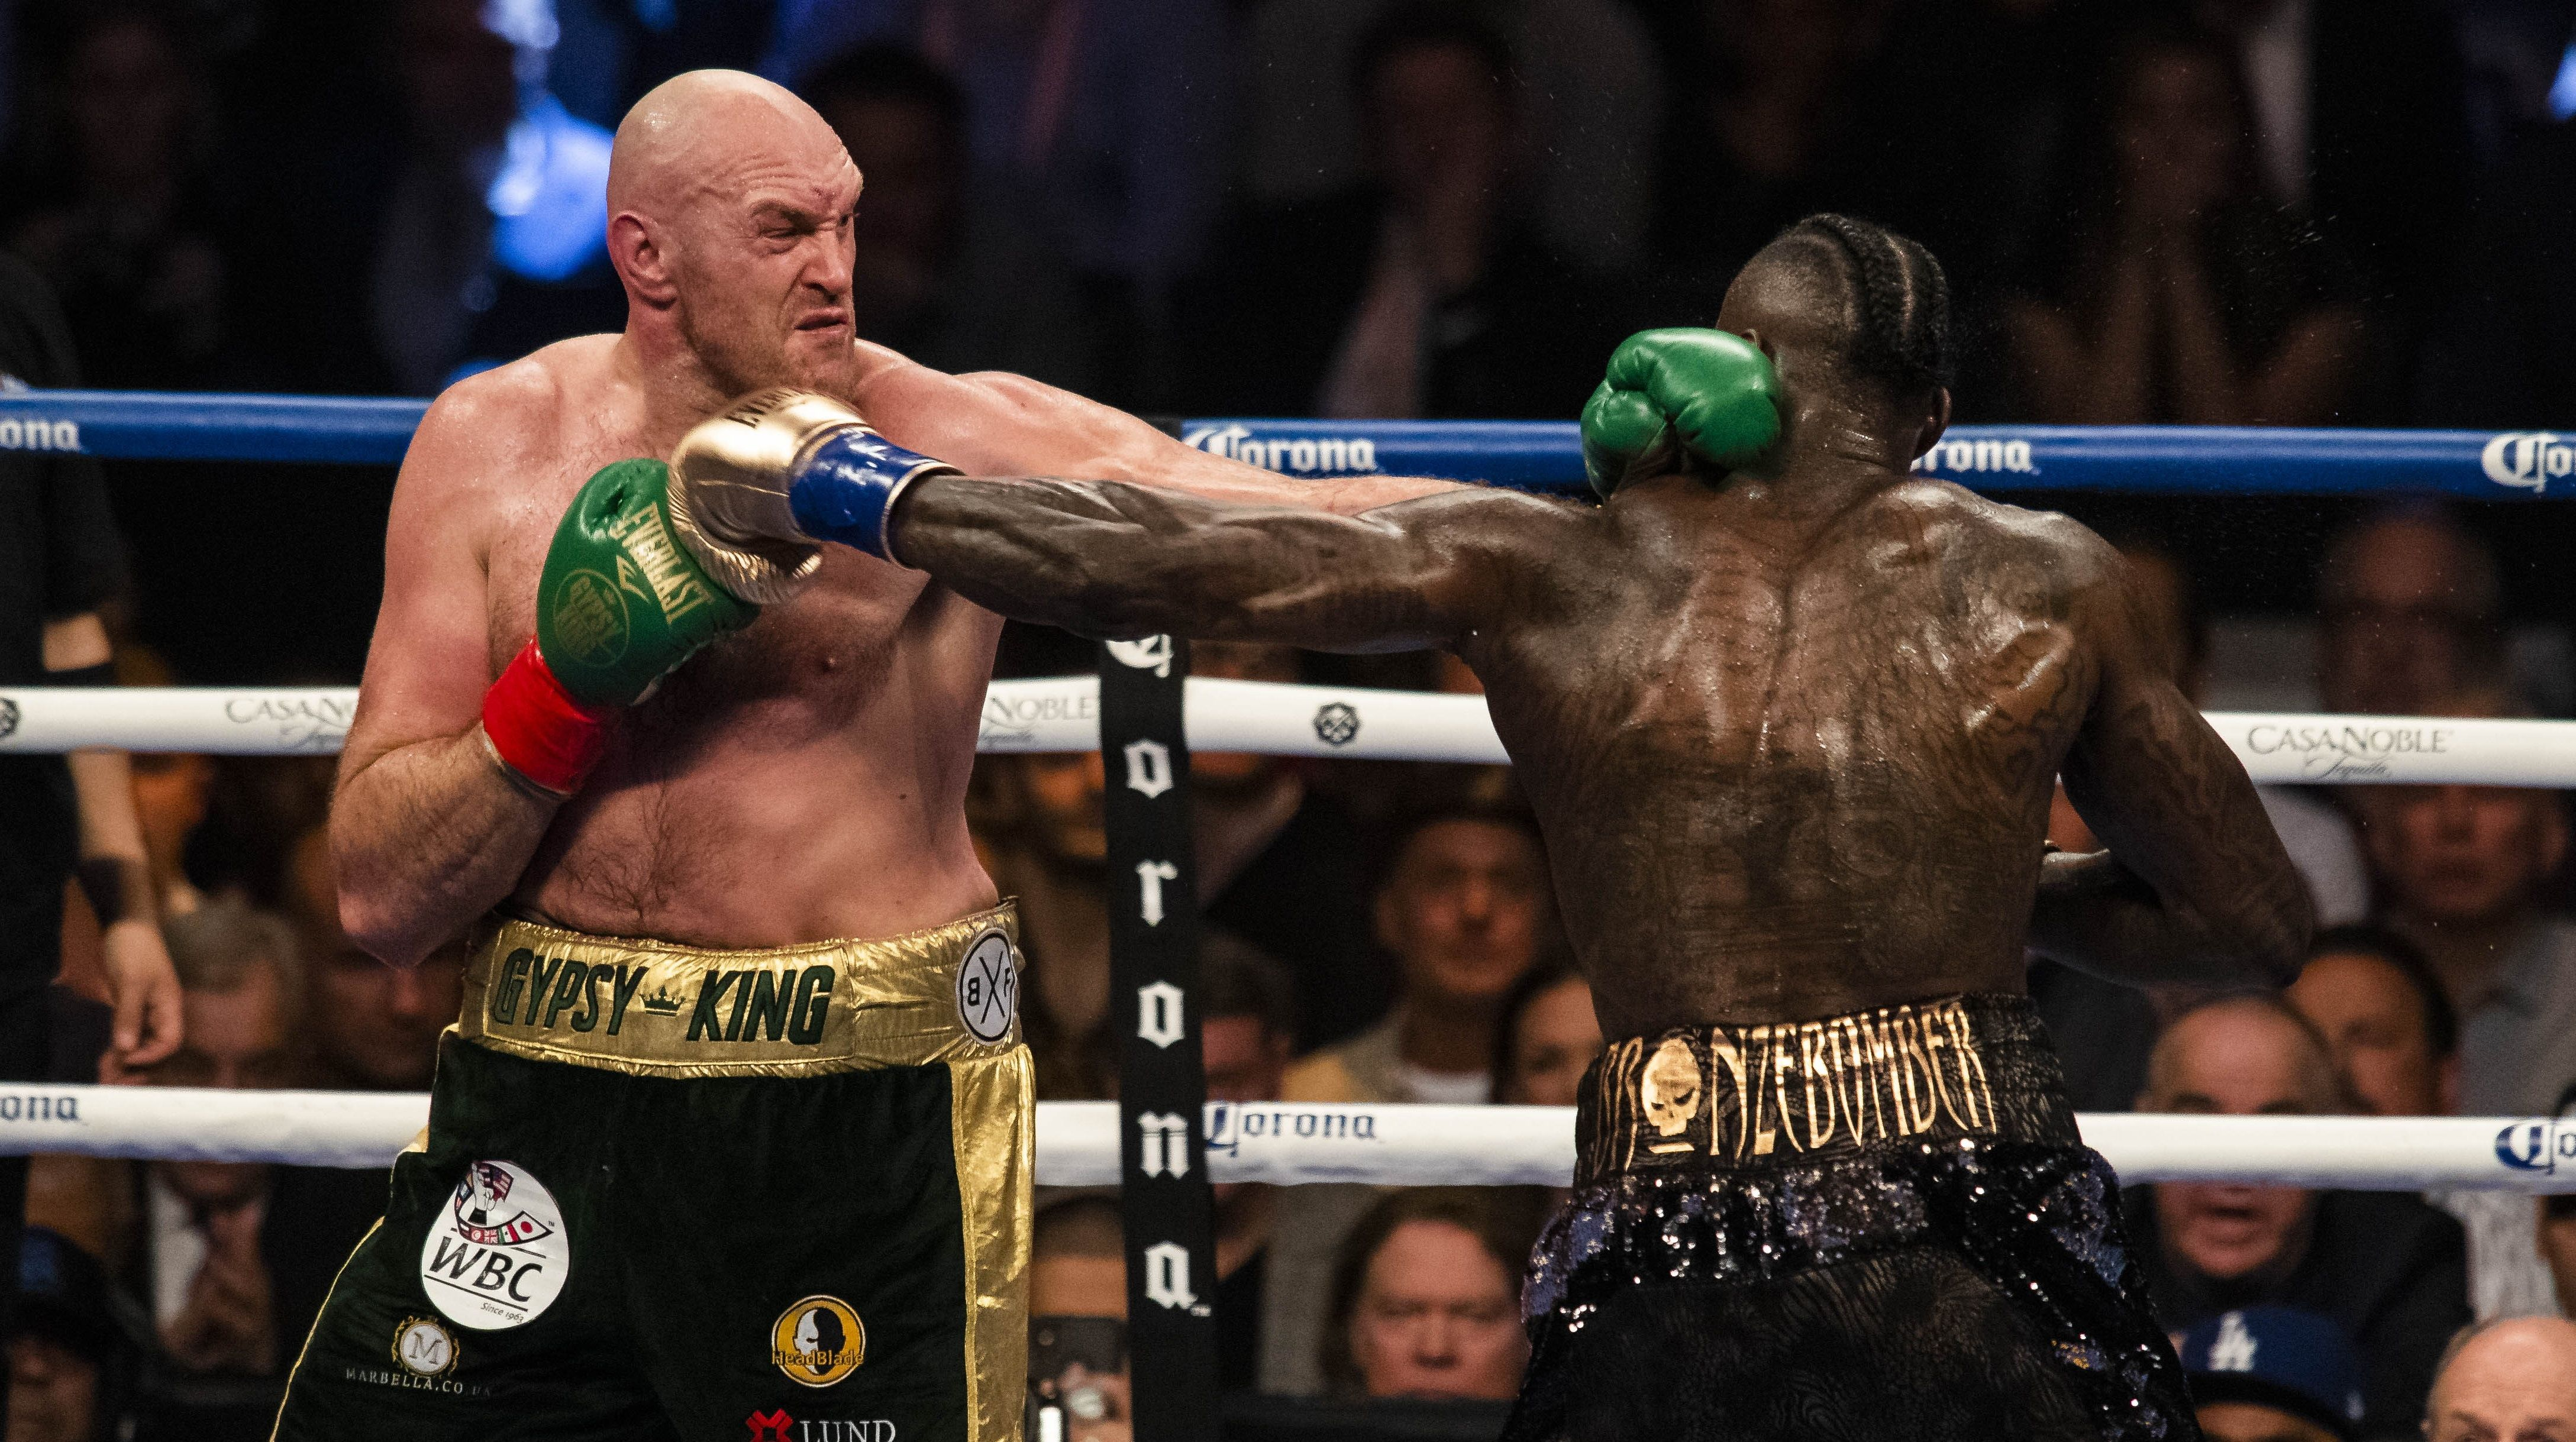 Wilder vs Fury 2 live stream how to watch the huge boxing